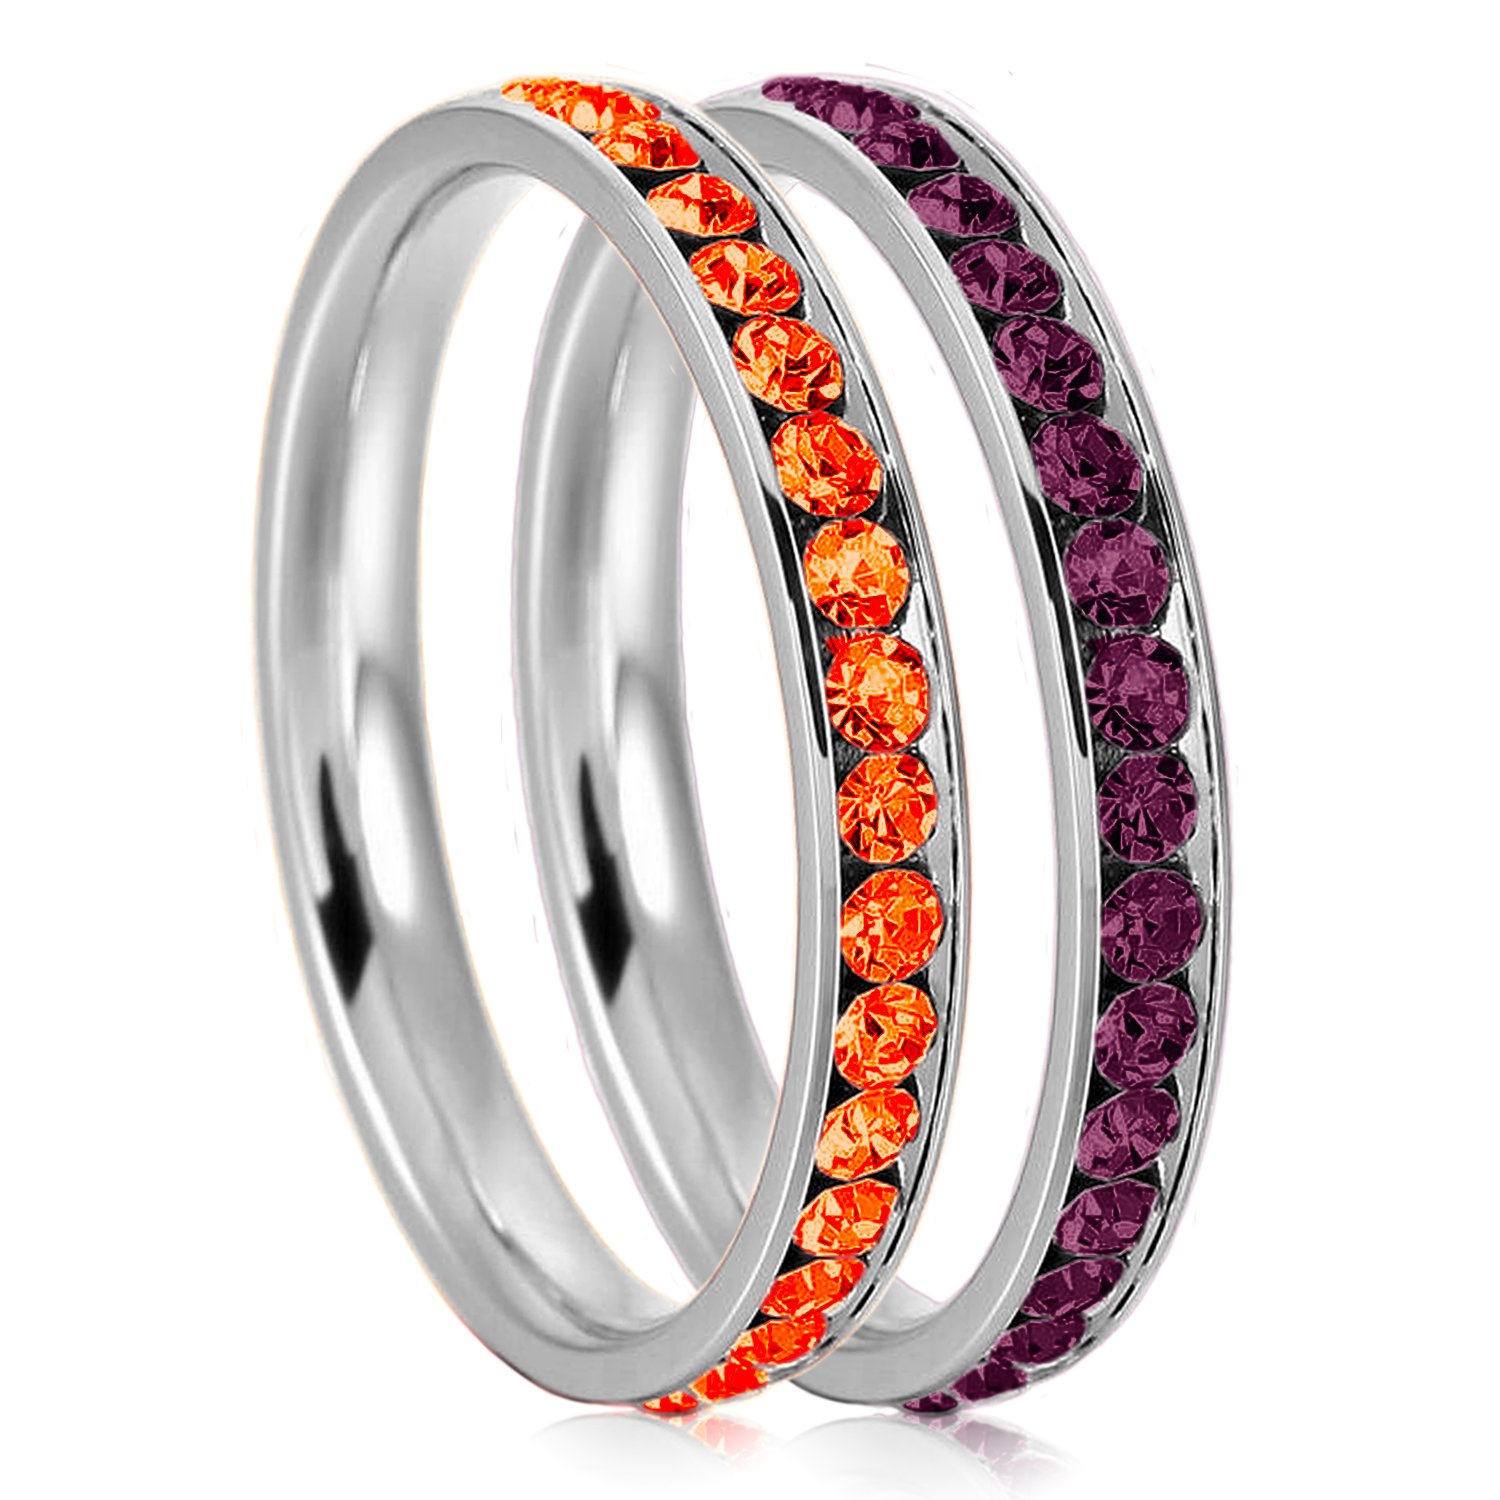 3mm Stainless Steel Eternity Hyacinth & Amethyst Color Crystal Stackable Wedding Band Rings (2 pieces) Set, Size 7